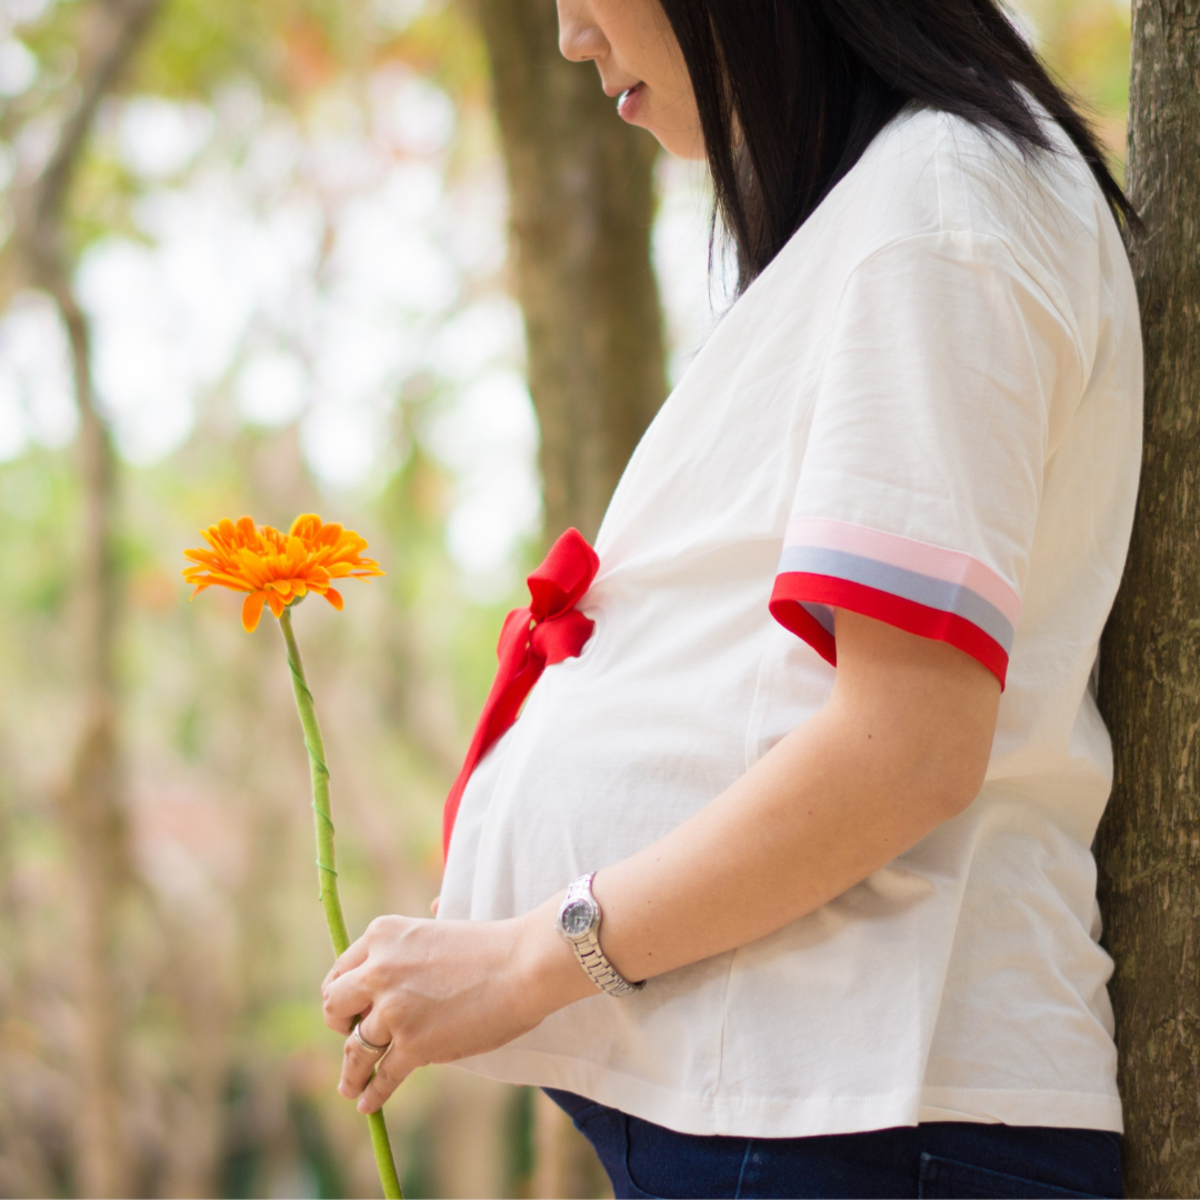 At least half of expecting mothers experience morning sickness during their first trimester.